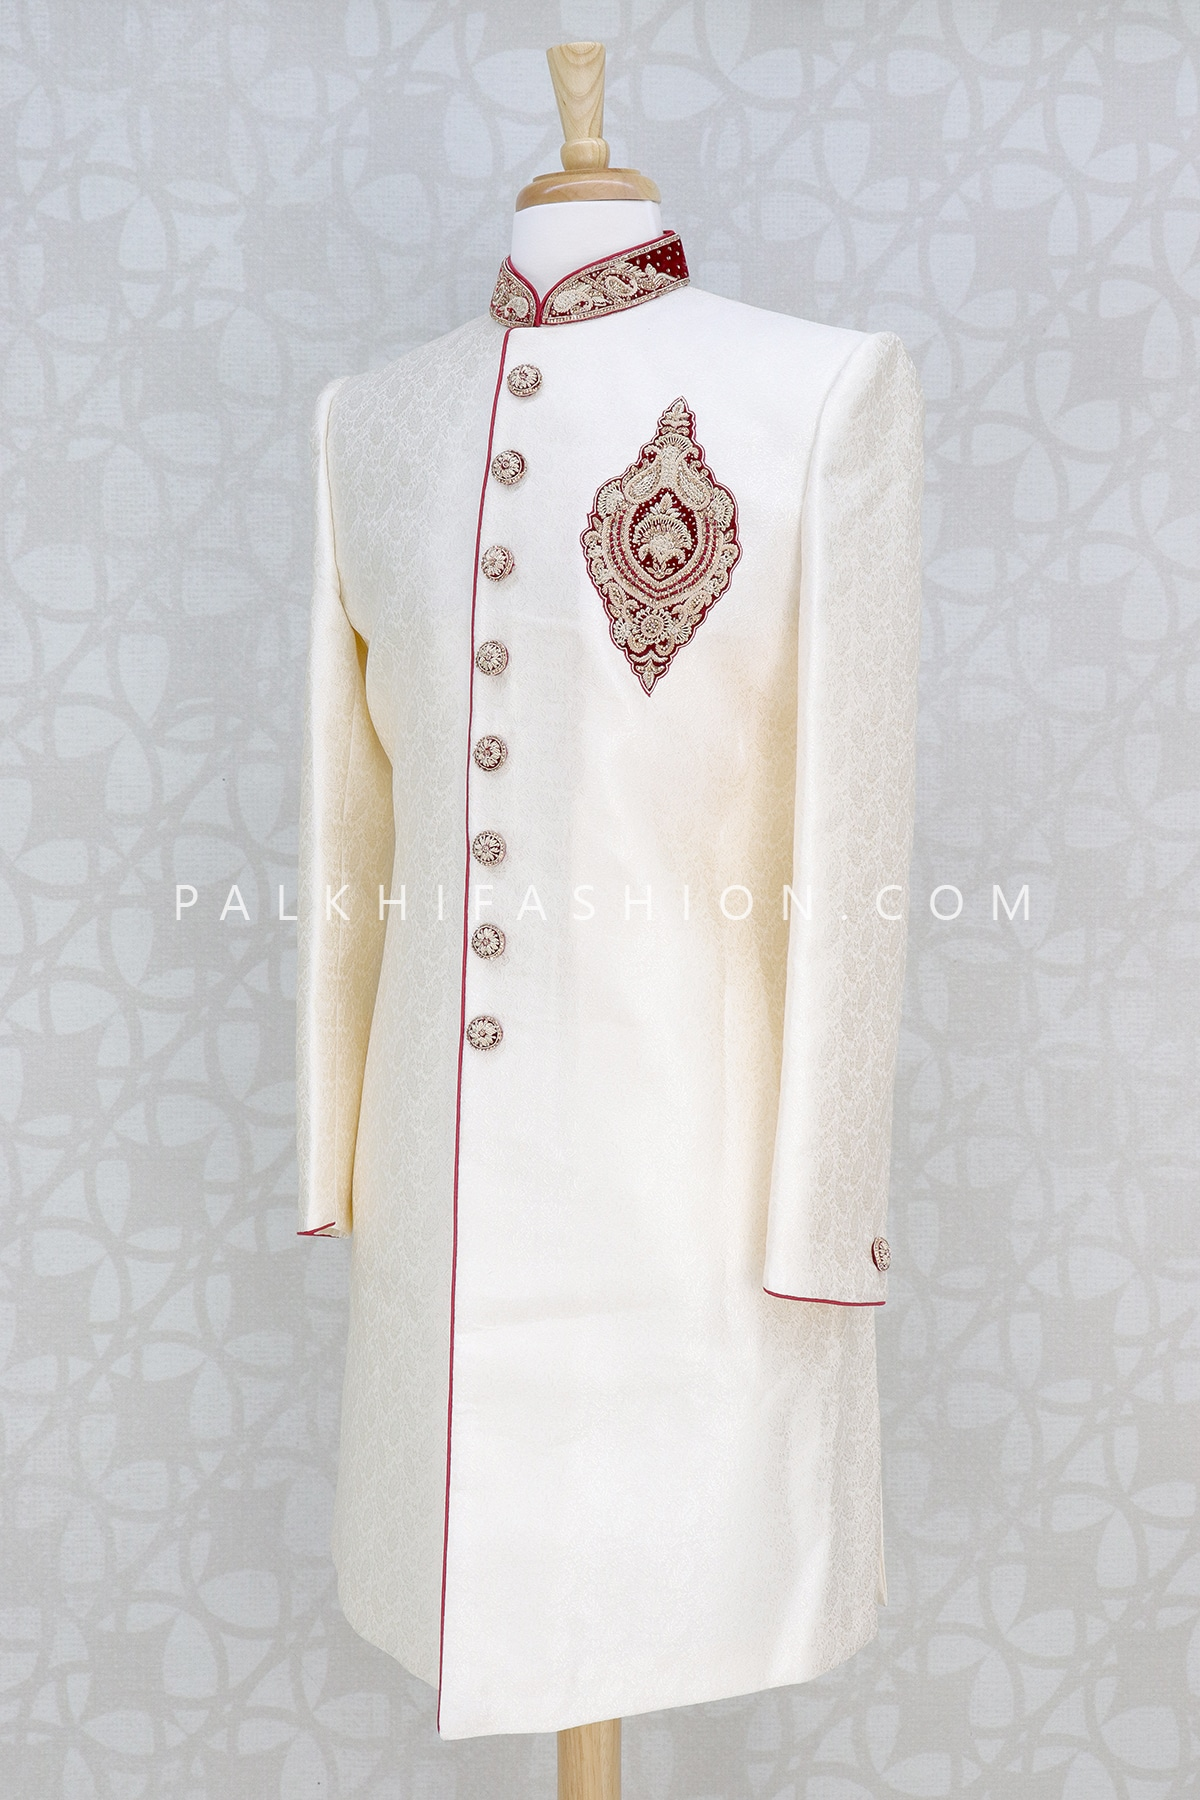 Off-white Silk Indo-Western With Appealing Work-Palkhi Fashion (2)